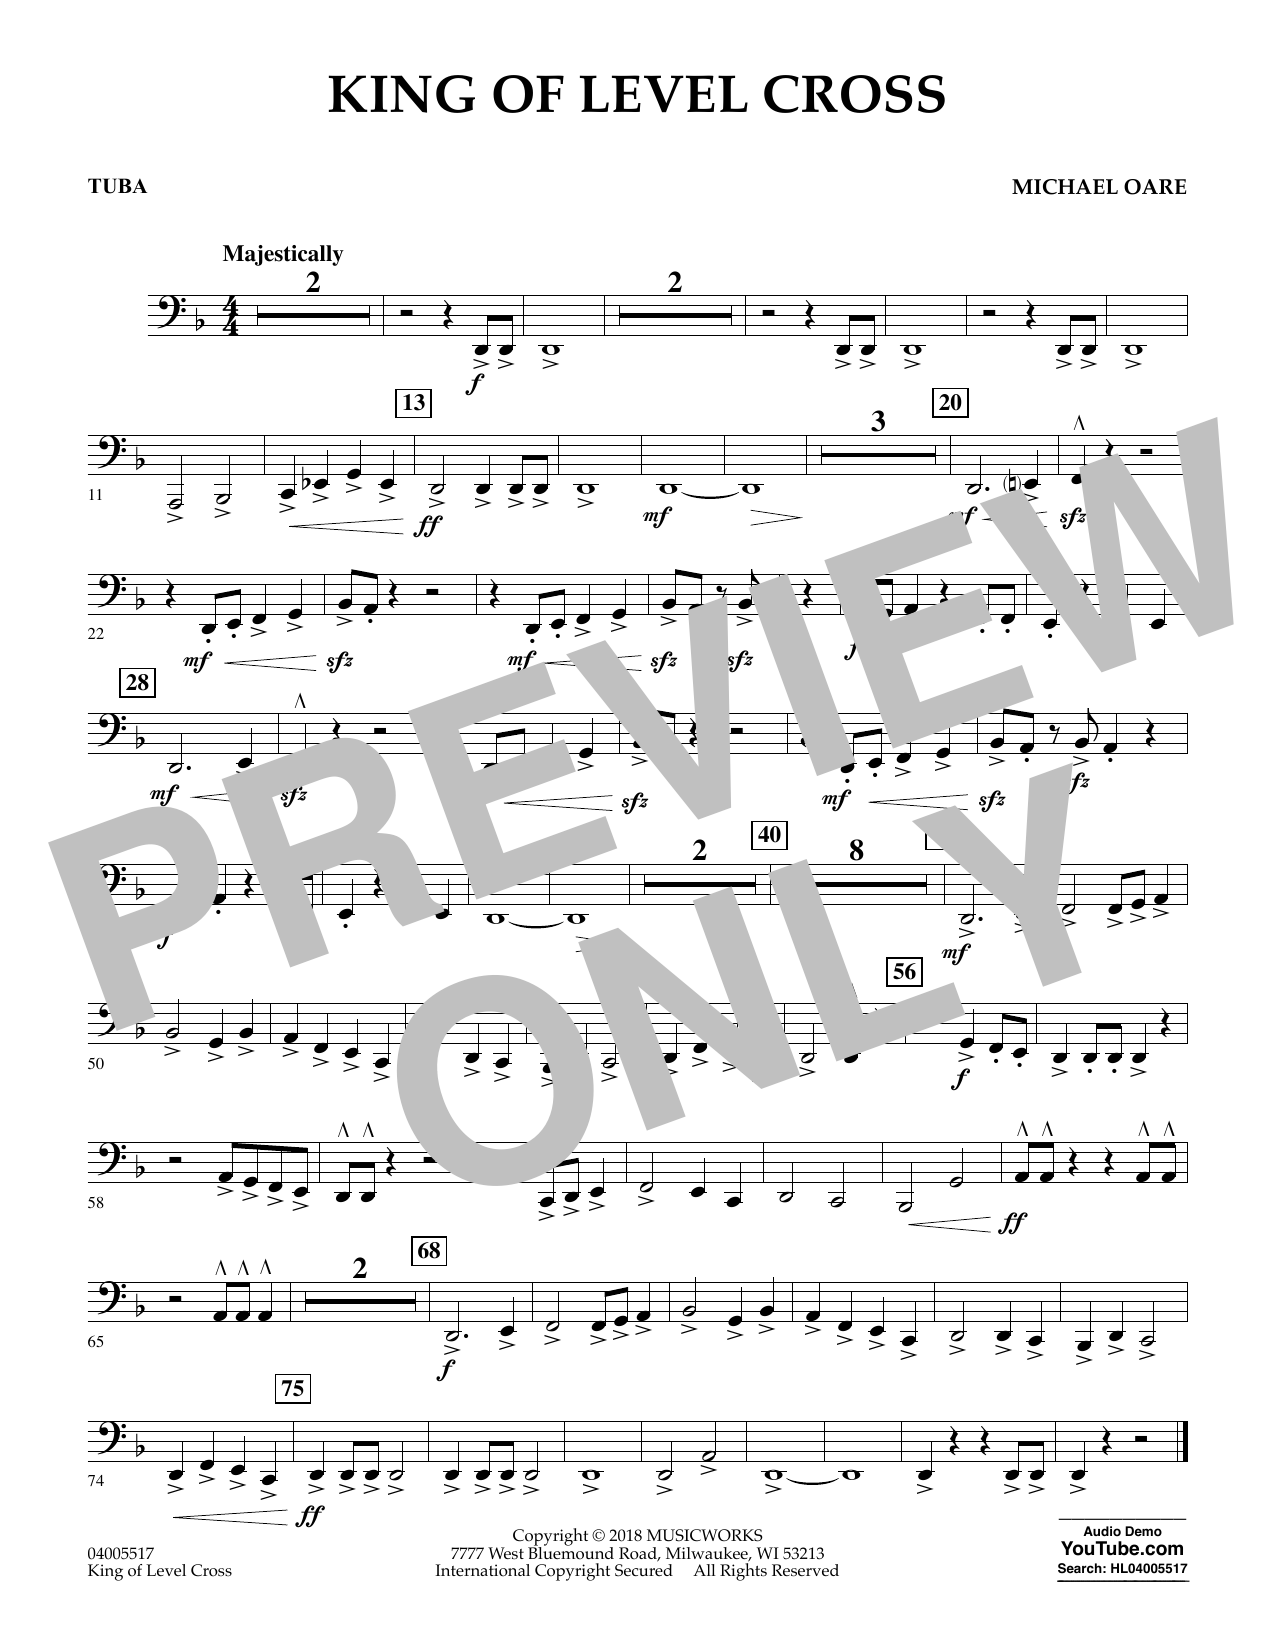 Michael Oare King of Level Cross - Tuba sheet music notes and chords. Download Printable PDF.